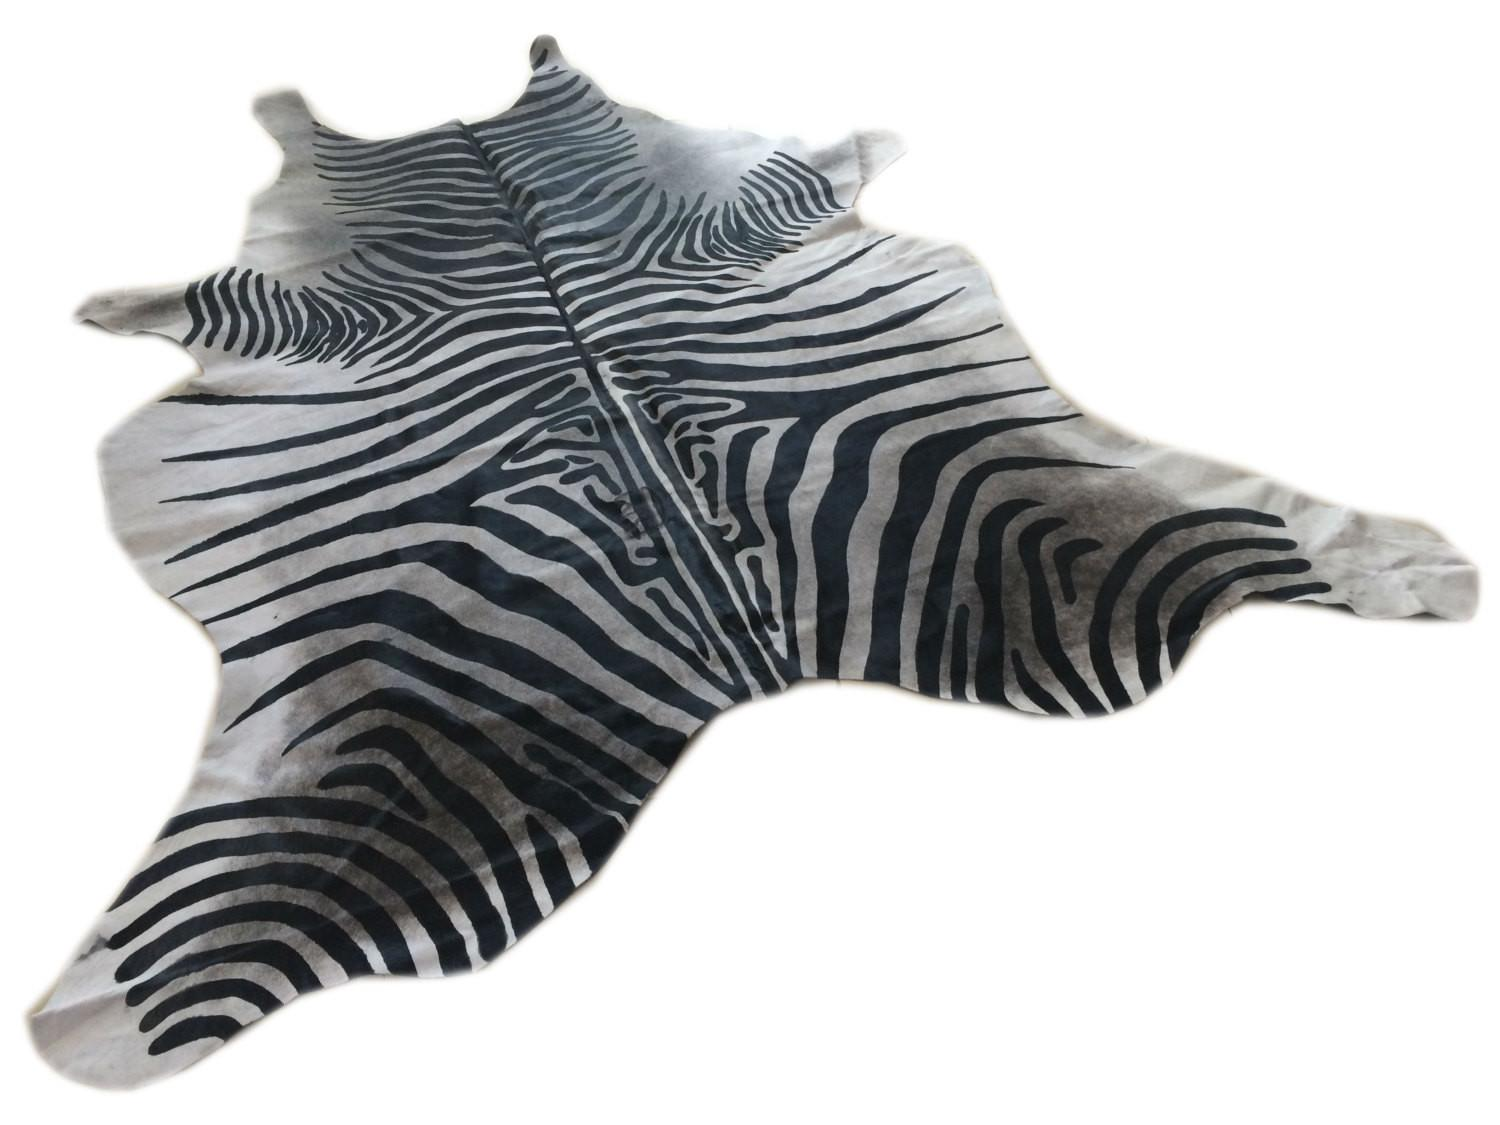 Cowhide Rug Zebra Black White Unique A271 Peau